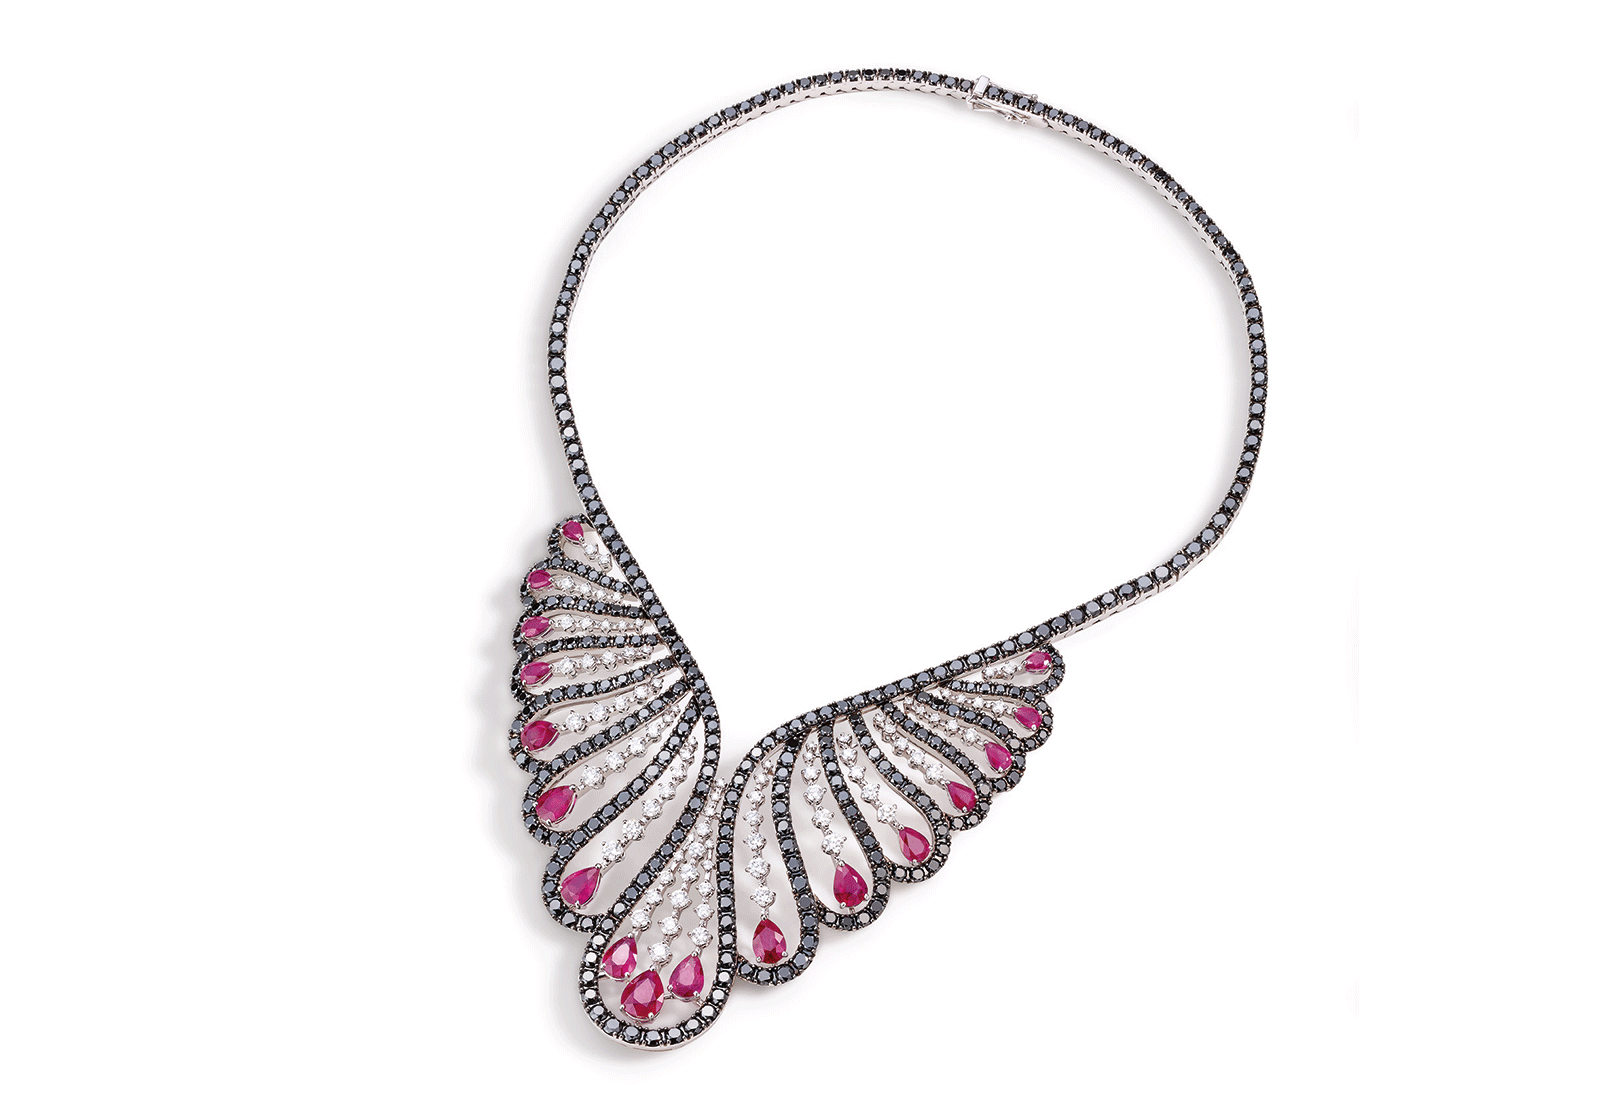 The Vanita necklace by Damiani